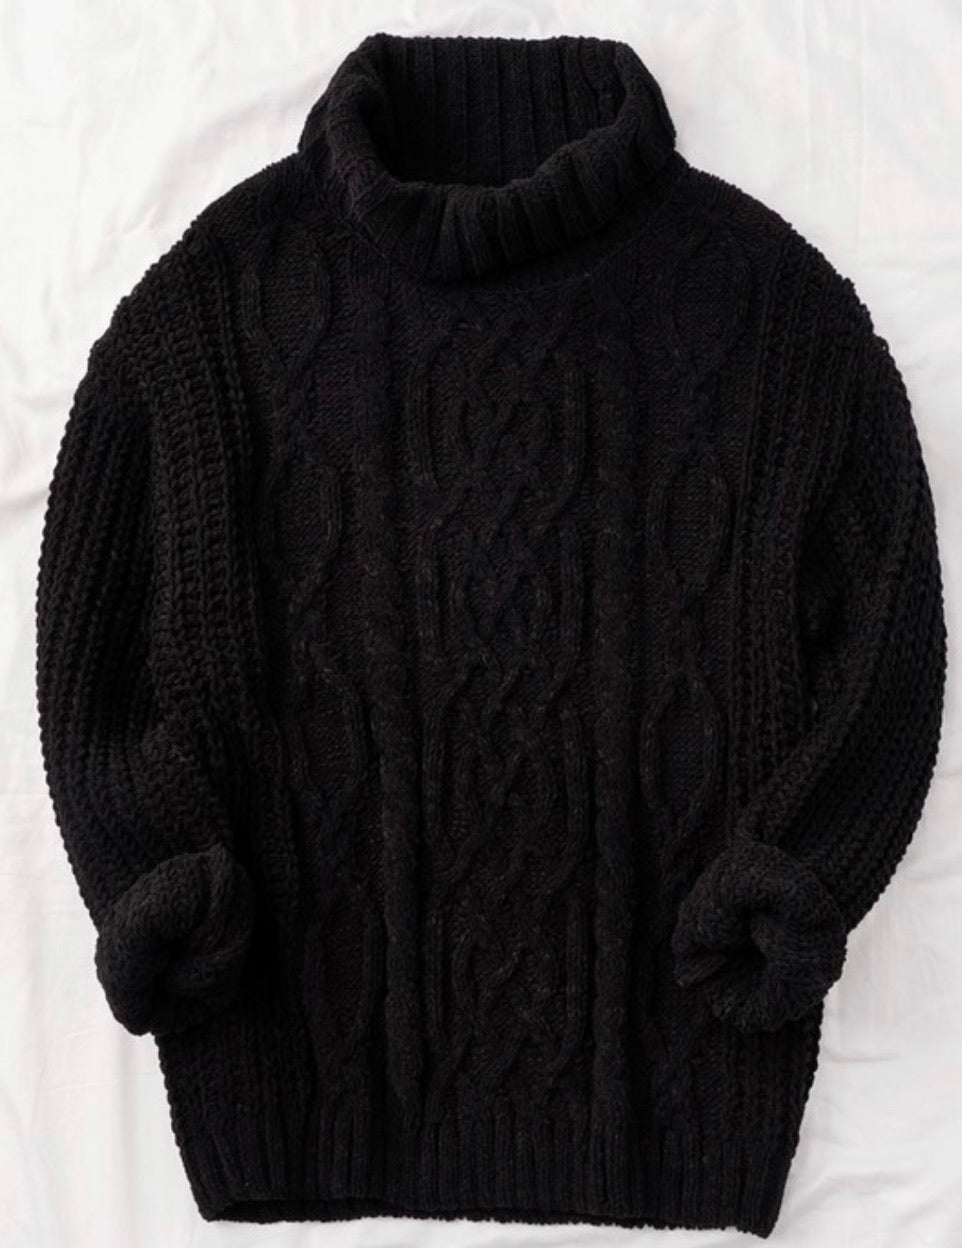 Somara Knit Sweater